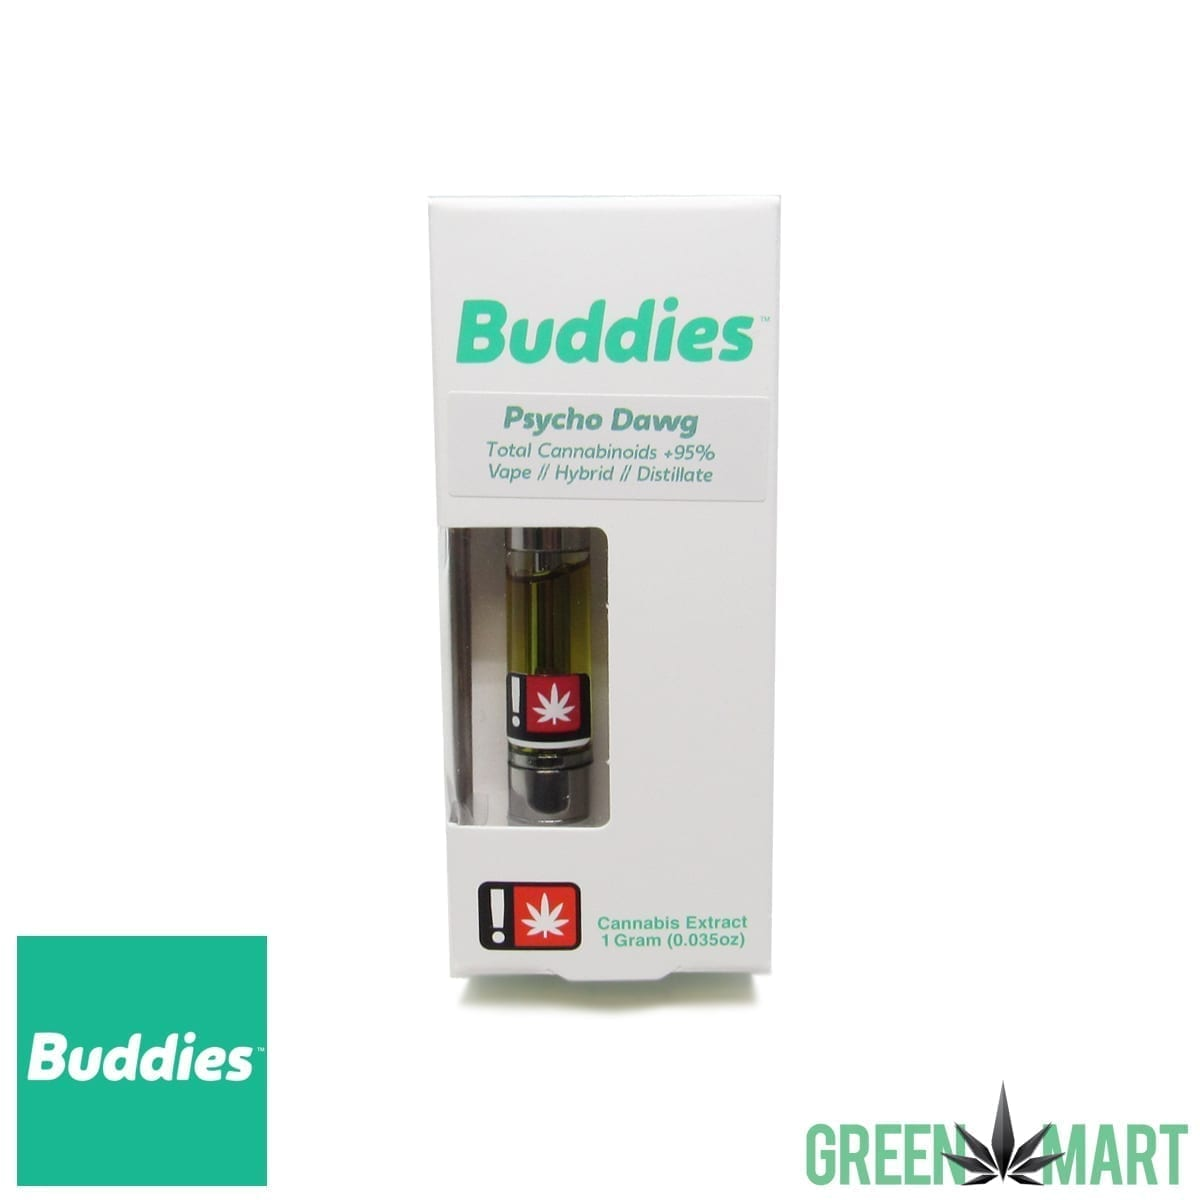 Buddies Brand Cartridge - Psycho Dawg